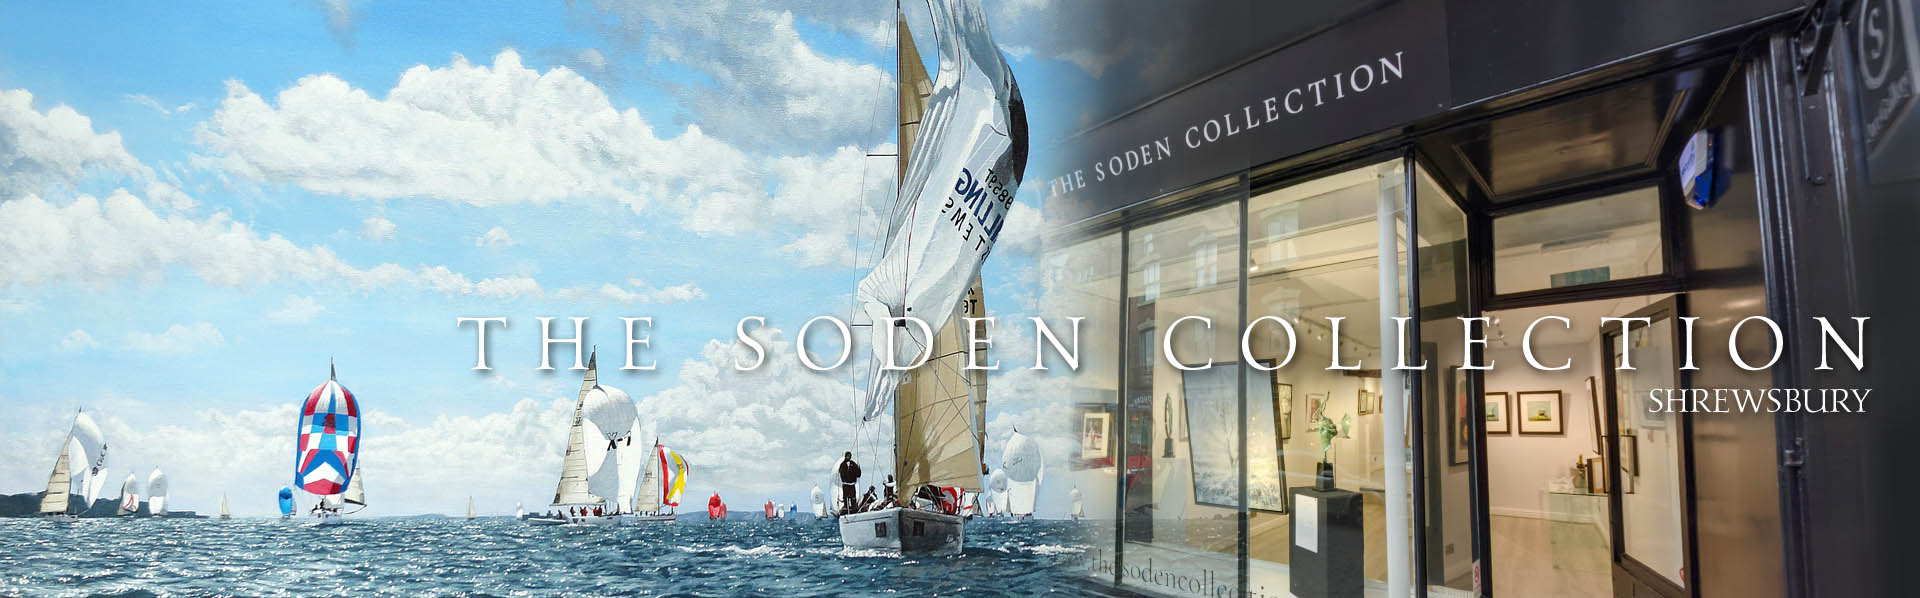 The Soden Collection